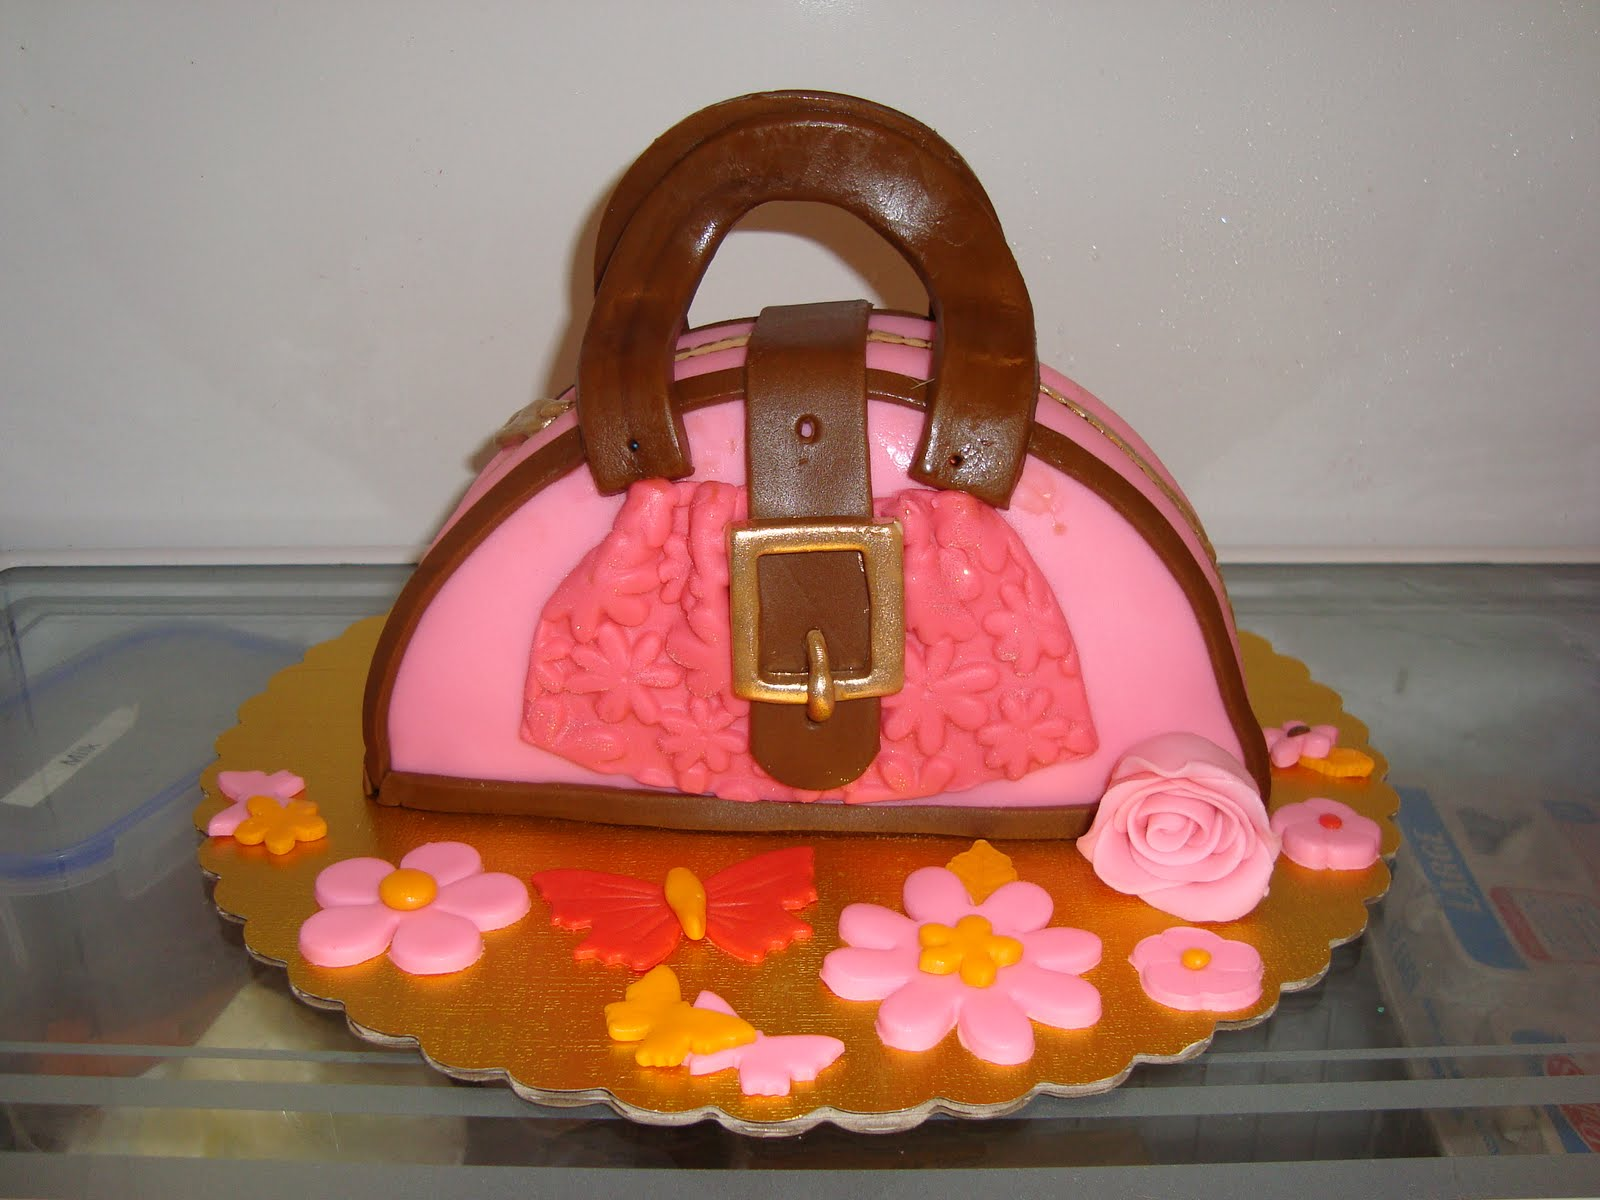 Syd S In The Kitchen Purse Cake Chefs Inc Cooking Camp For Kids On